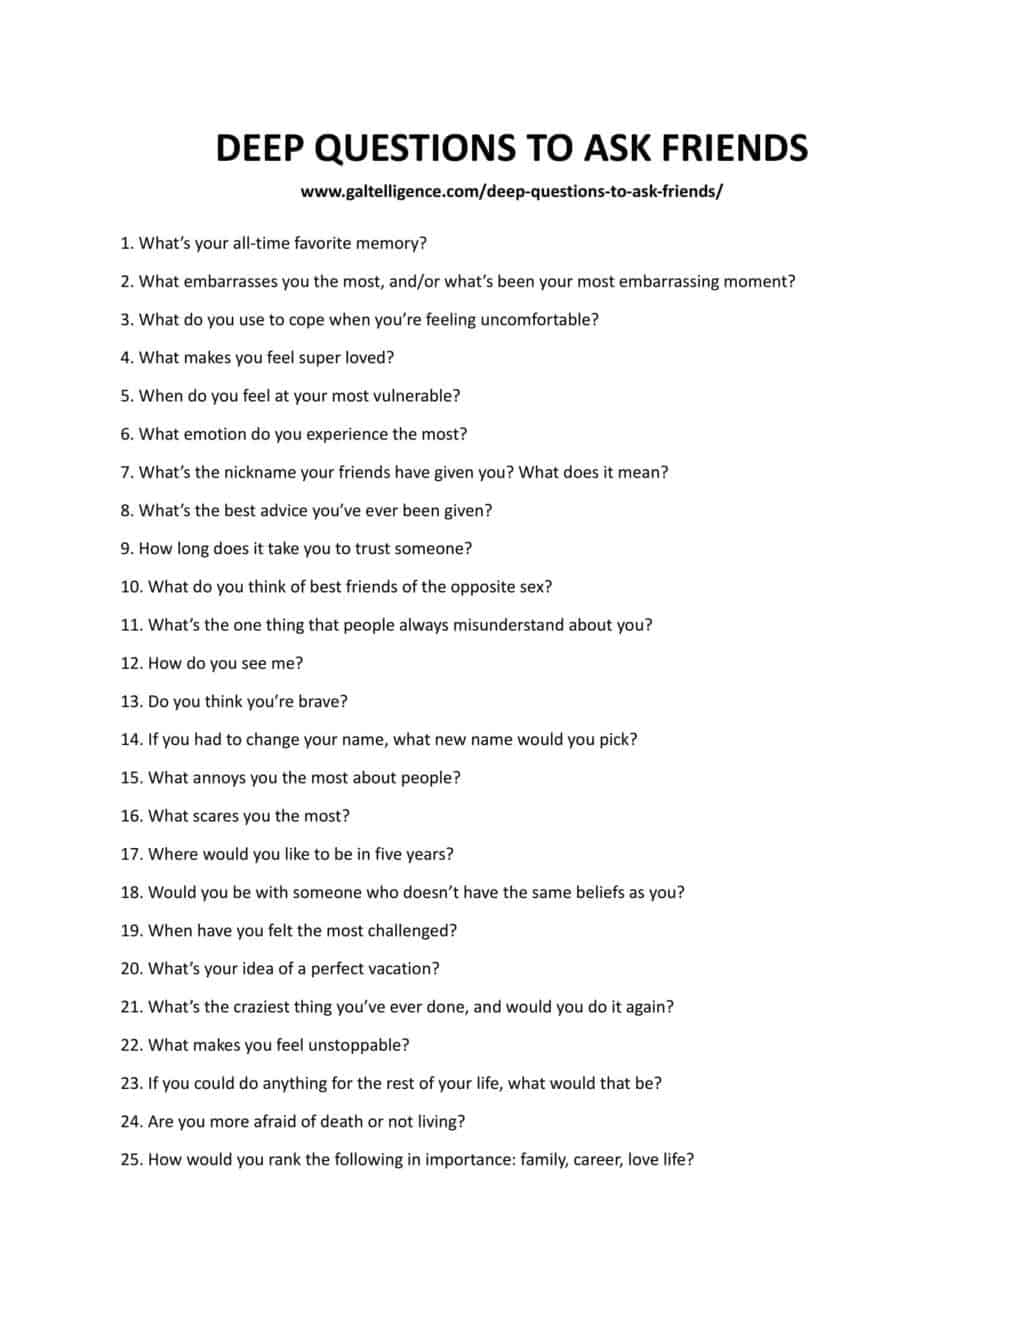 To ask close friends questions 325 YES